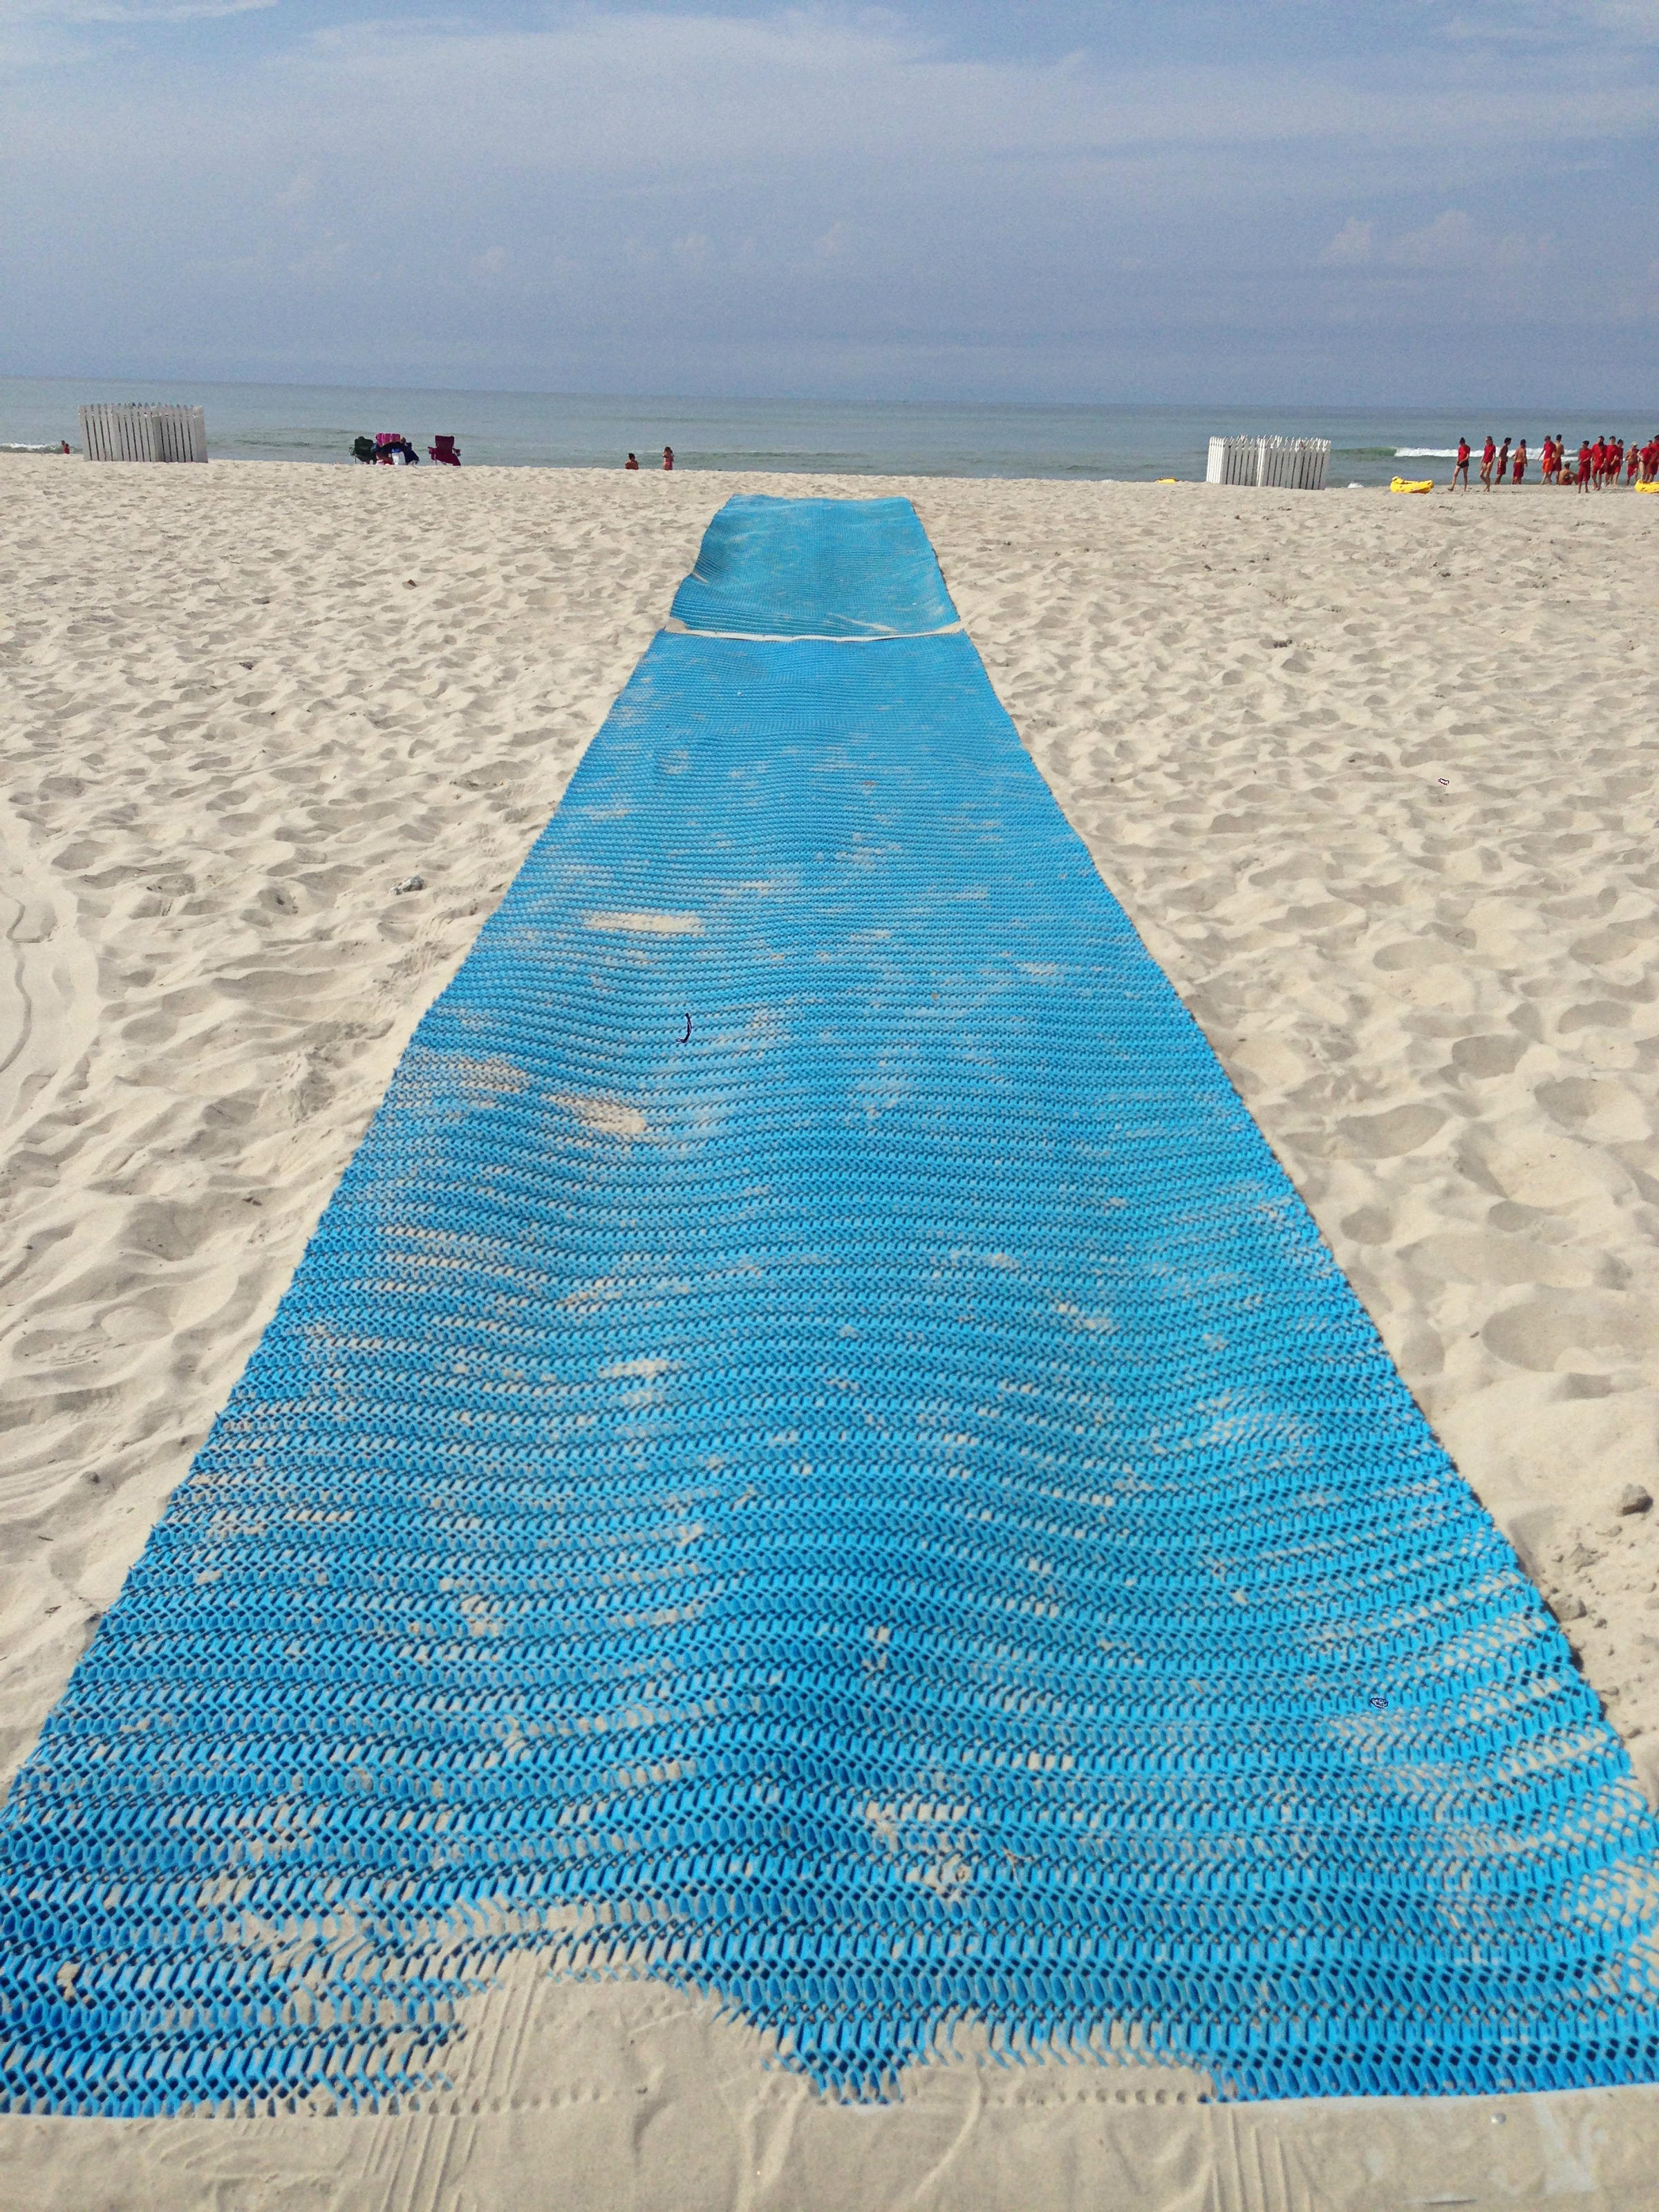 making local beaches safer and more accessible